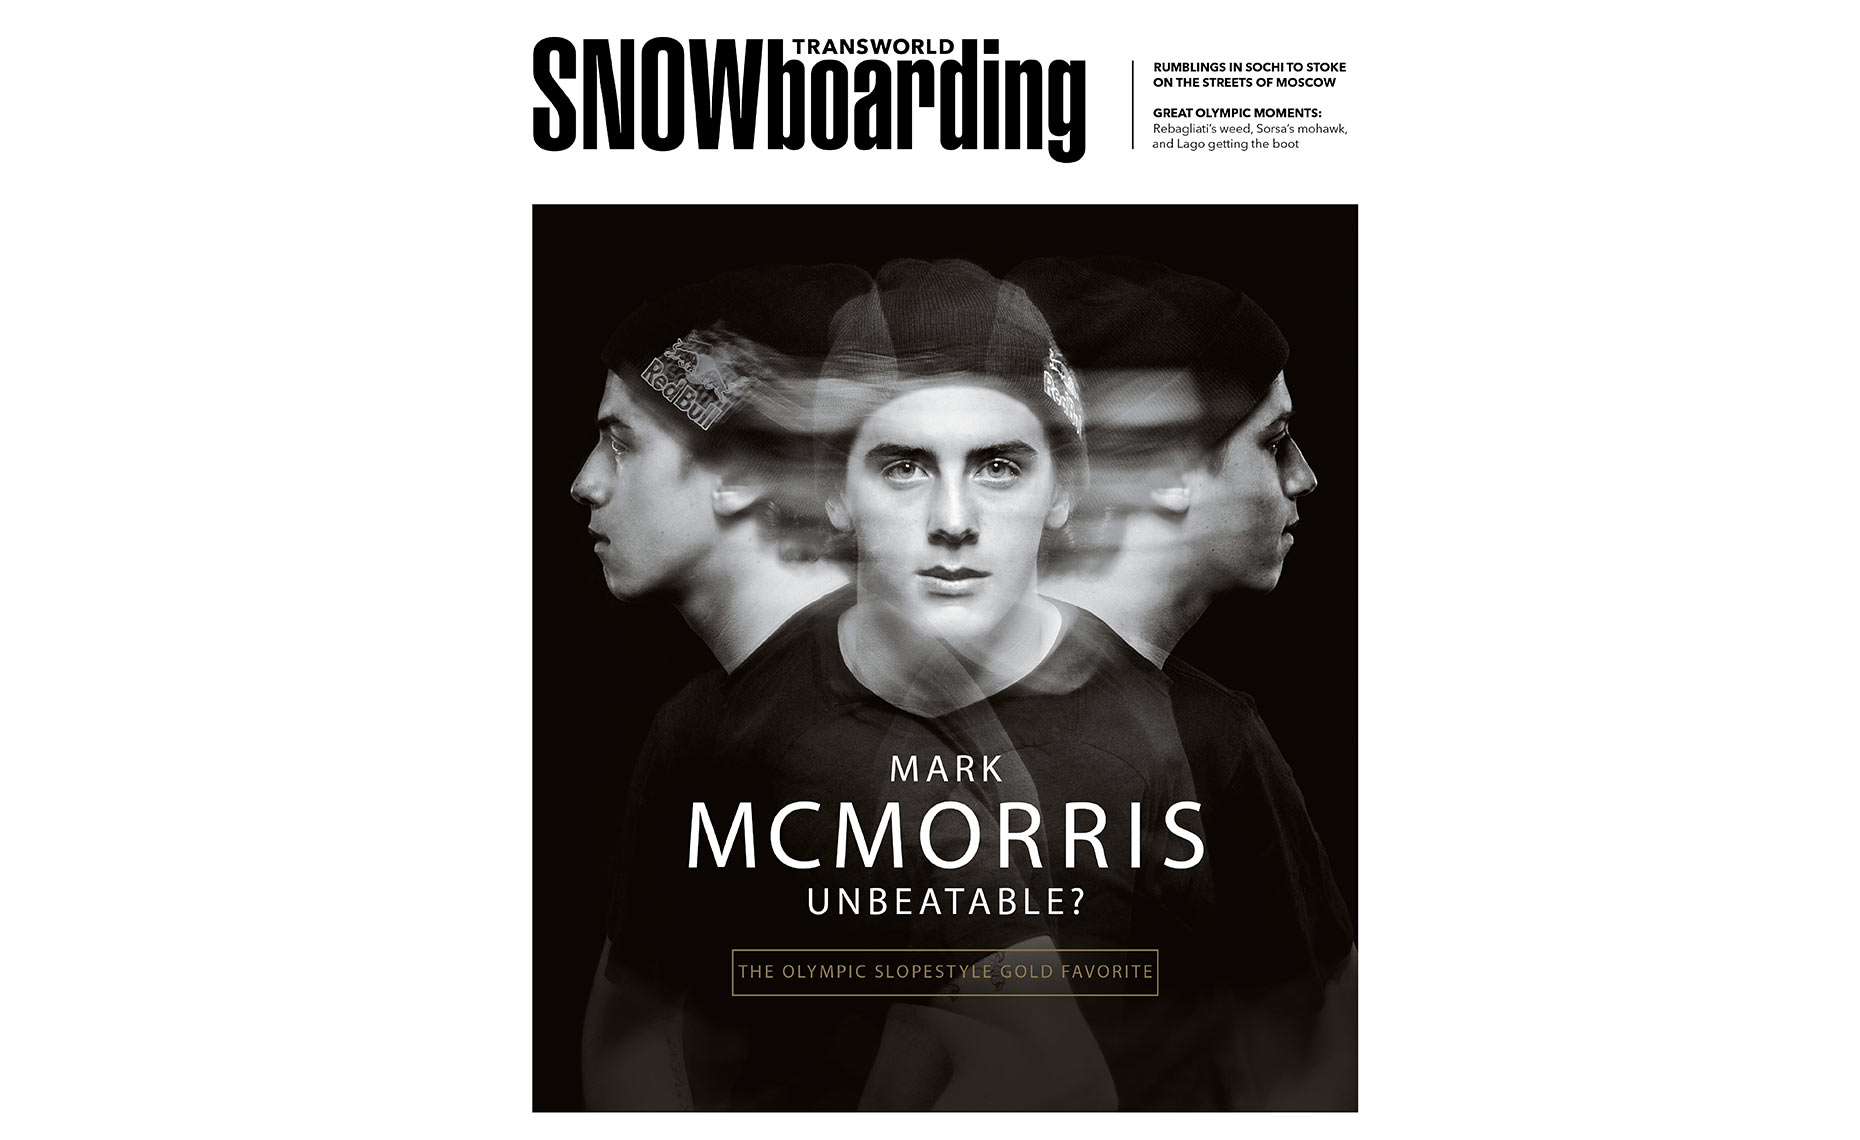 01-Mark-McMorris-TransWorld-SNOWboarding-Chris-Wellhausen